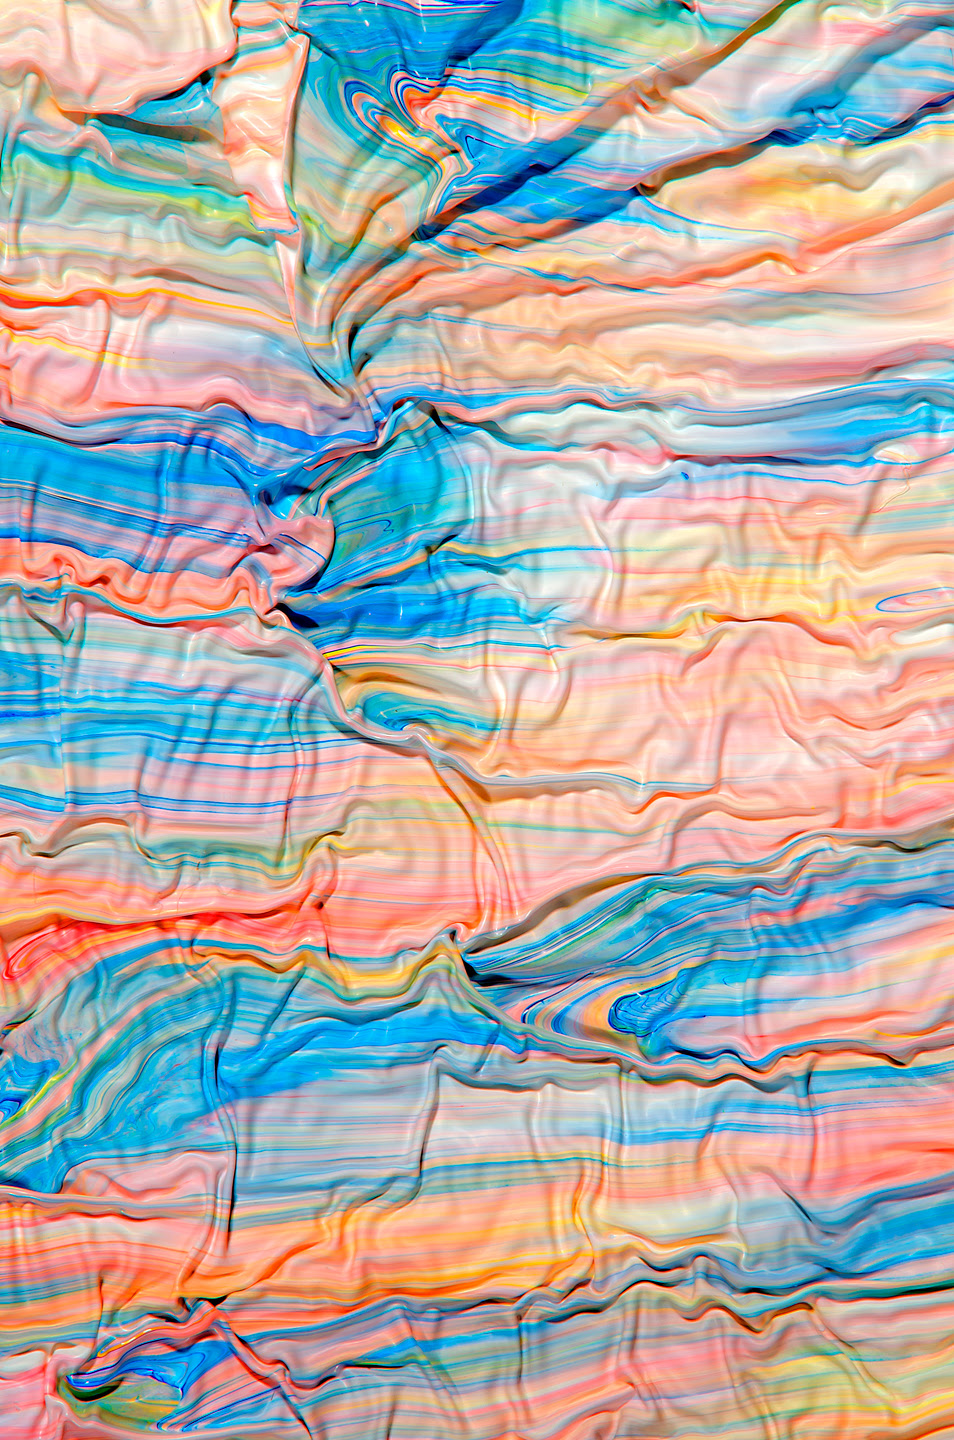 Swirling Photographs of Mixed Paint by Mark Lovejoy psychedelic paint color abstract